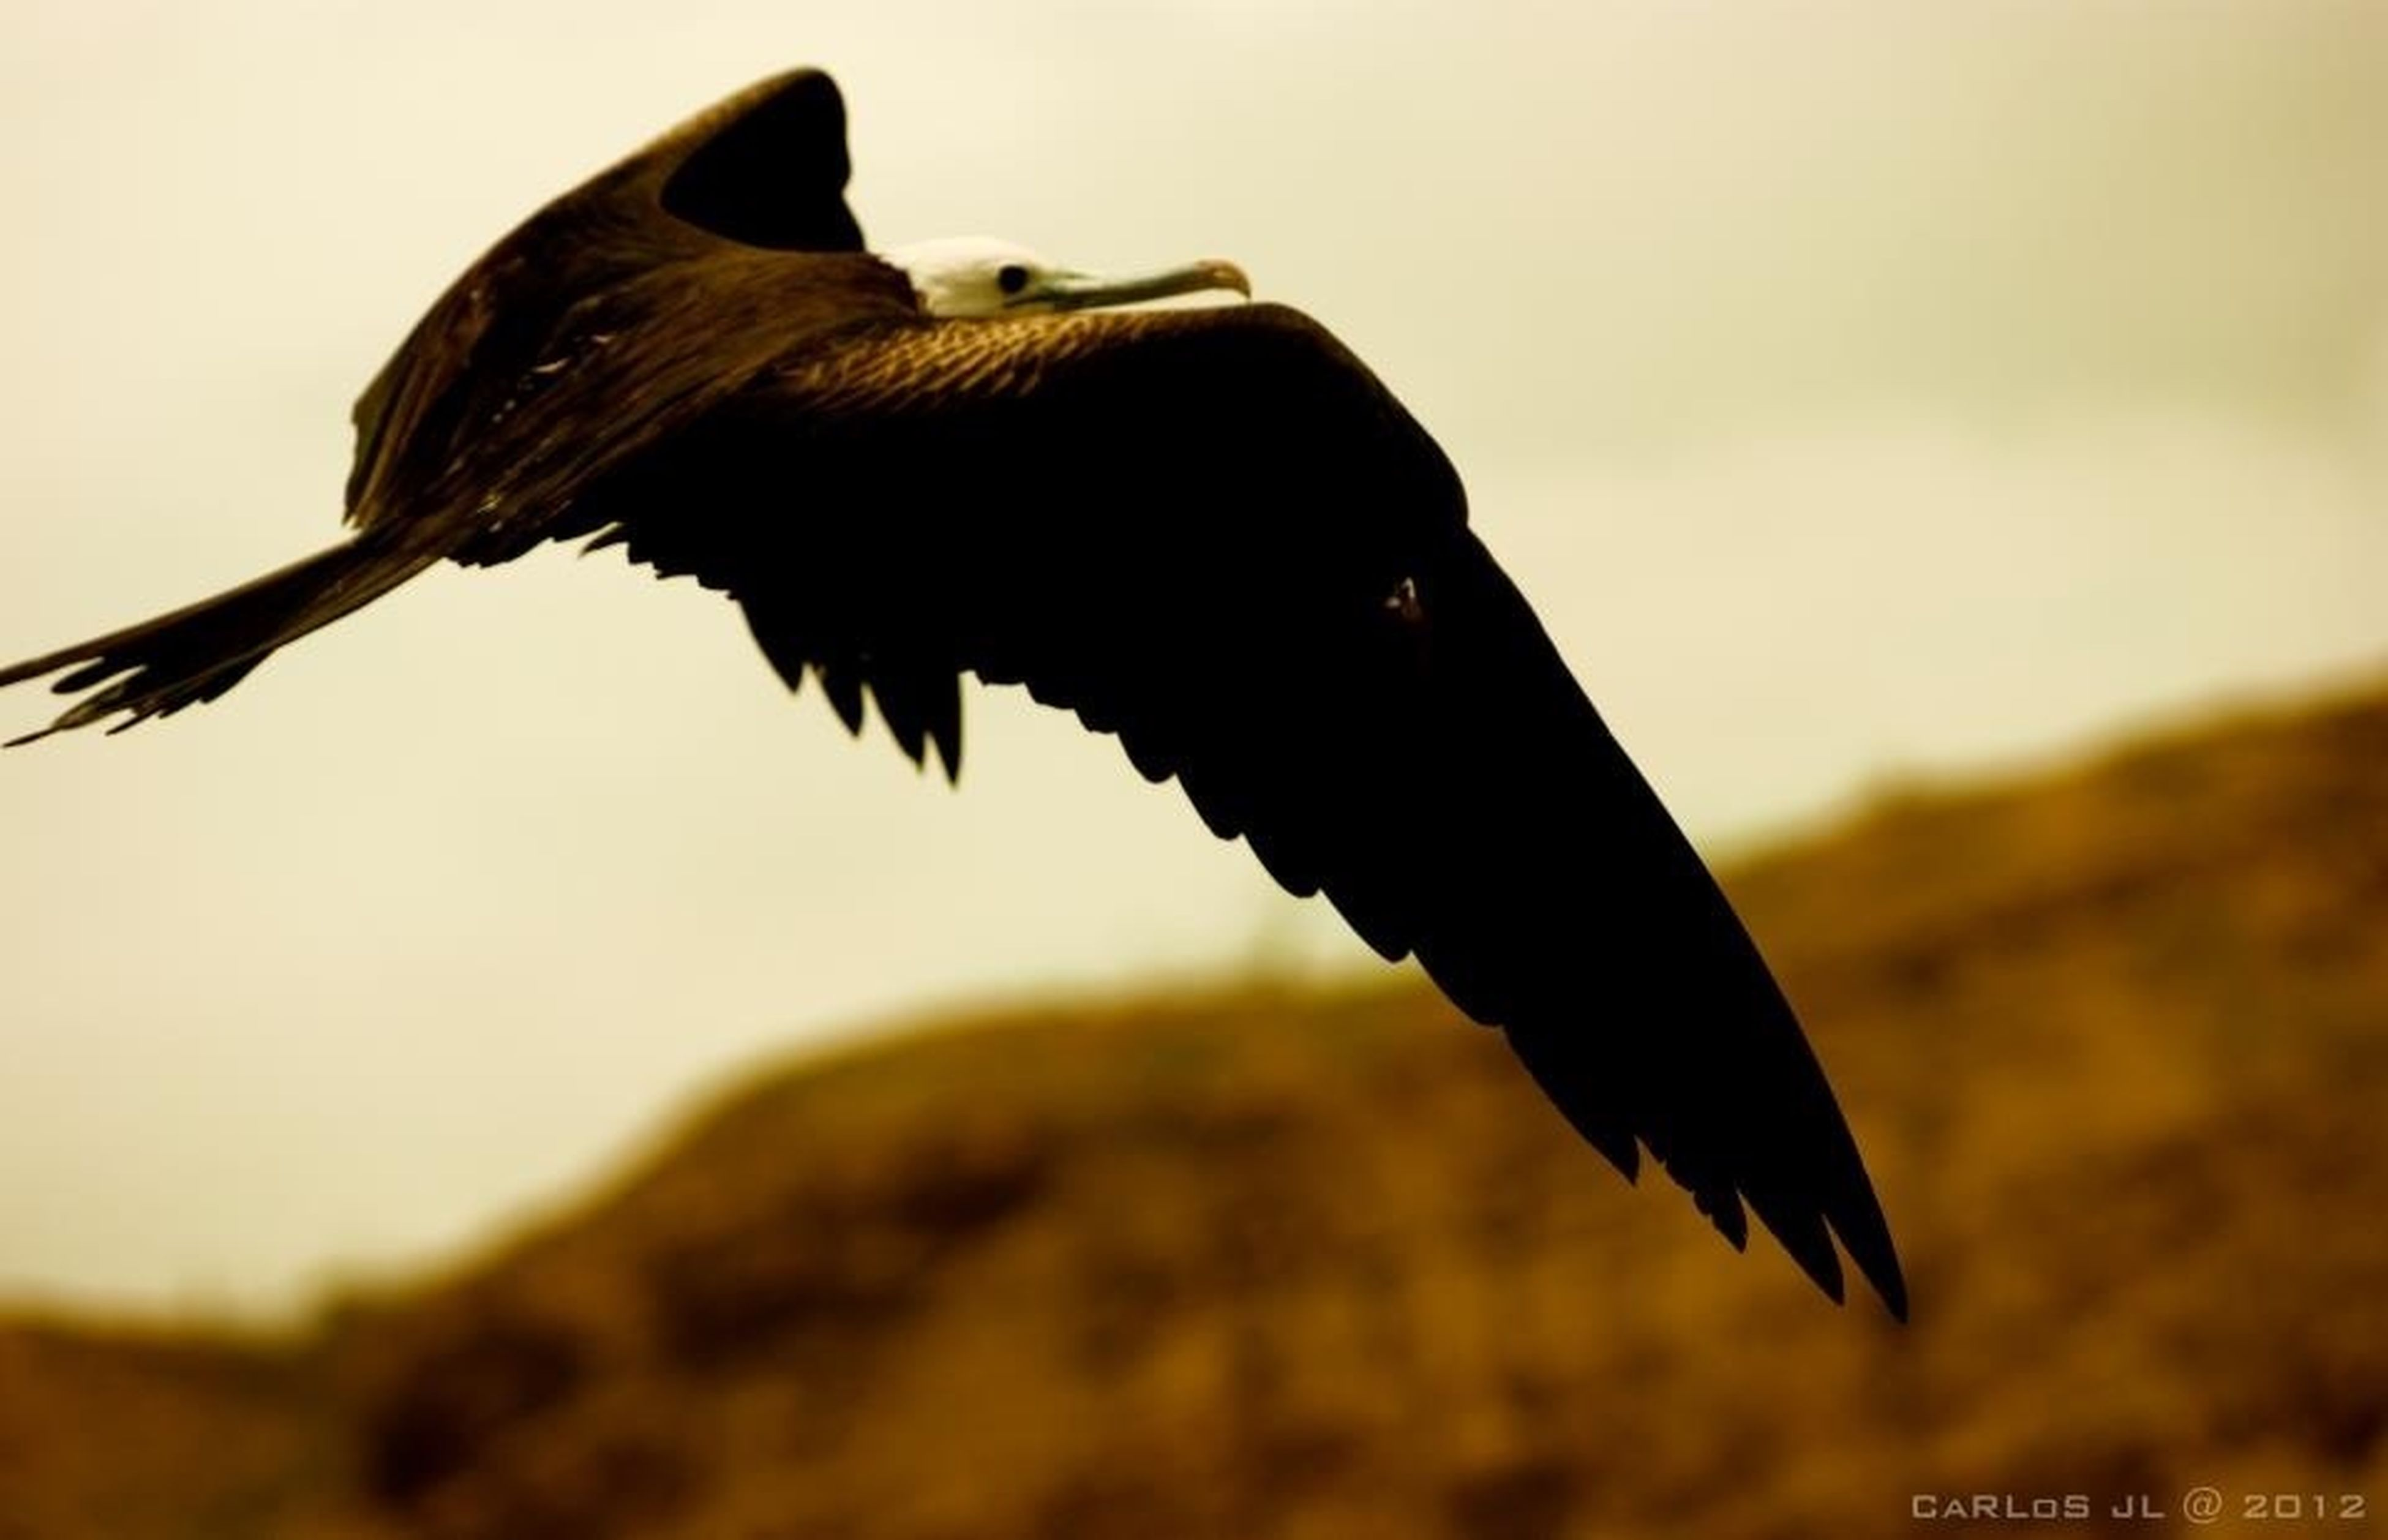 animal themes, one animal, animals in the wild, bird, wildlife, flying, spread wings, focus on foreground, animal wing, close-up, side view, clear sky, mid-air, nature, zoology, full length, low angle view, selective focus, day, outdoors